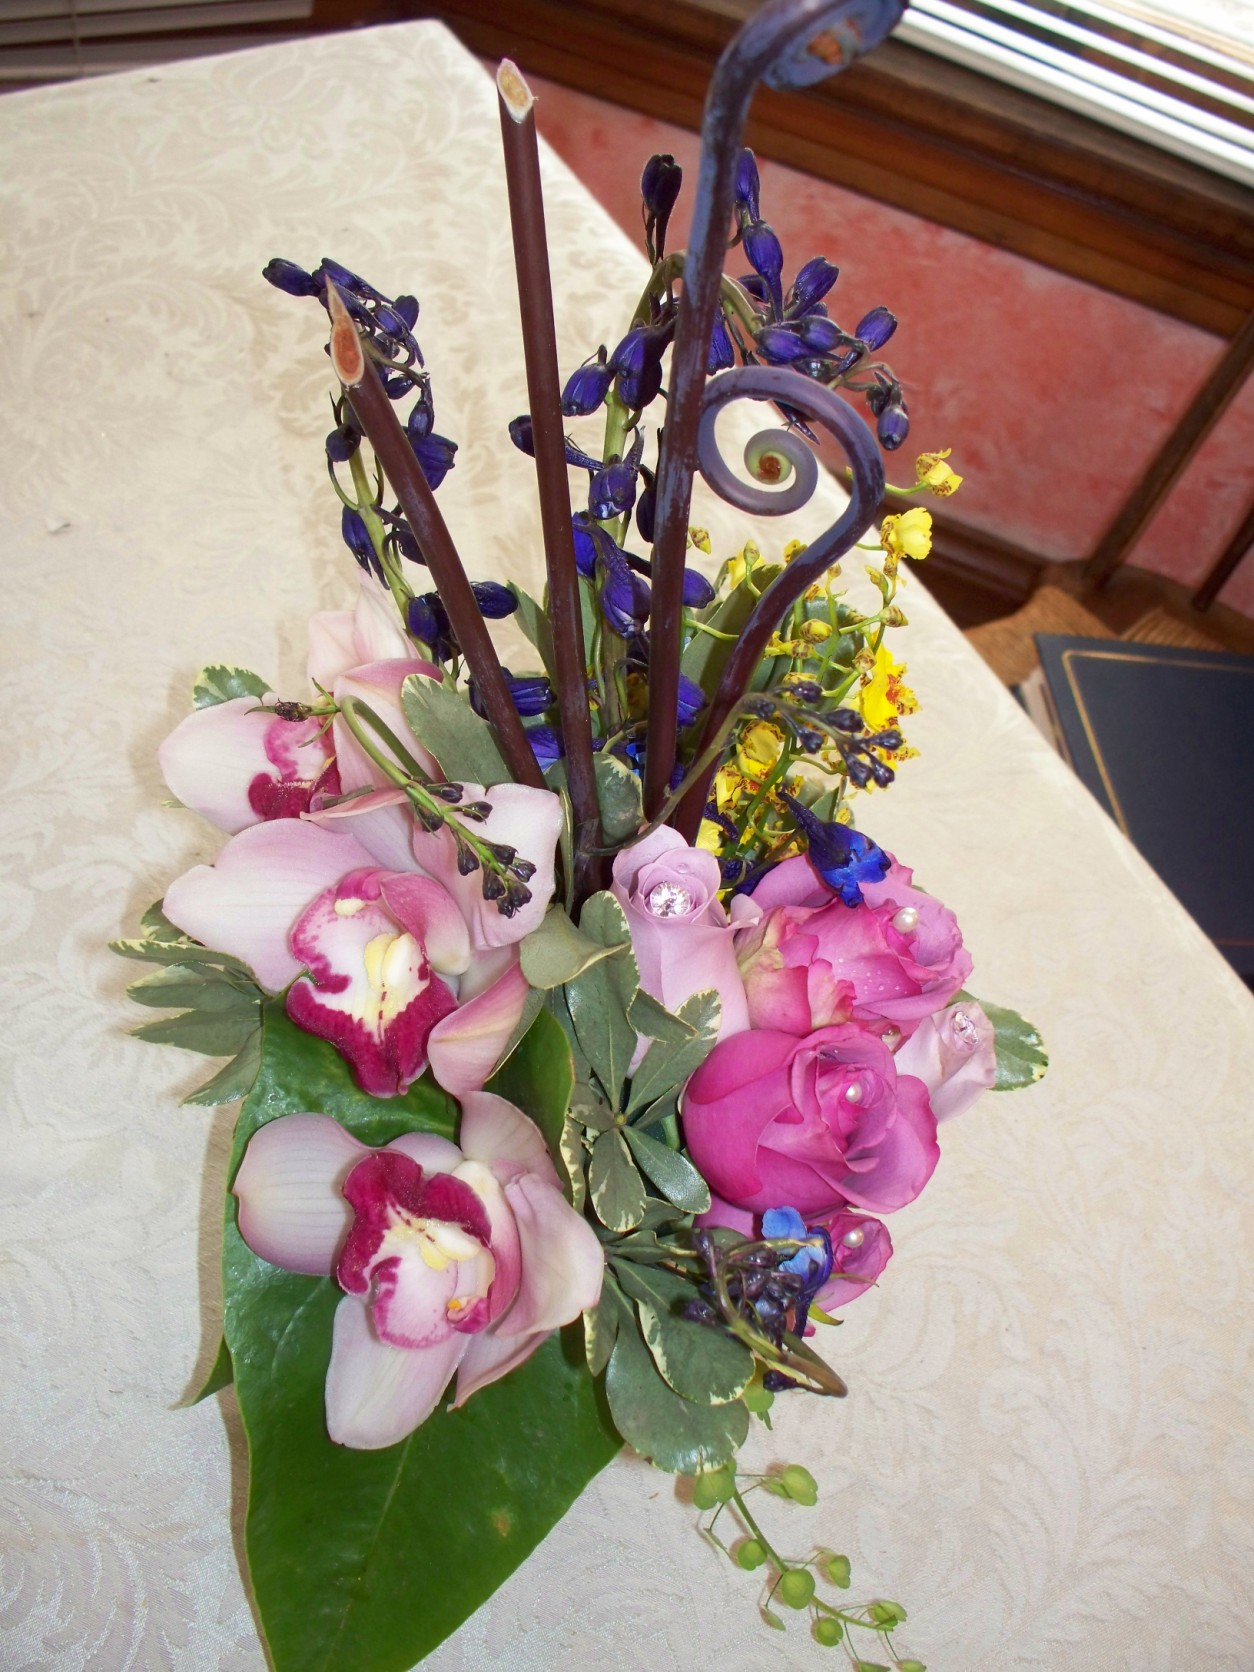 1665 EXOTIC ORCHID & PURPLE, LAVENDER ROSE TABLE ARRANGEMENT